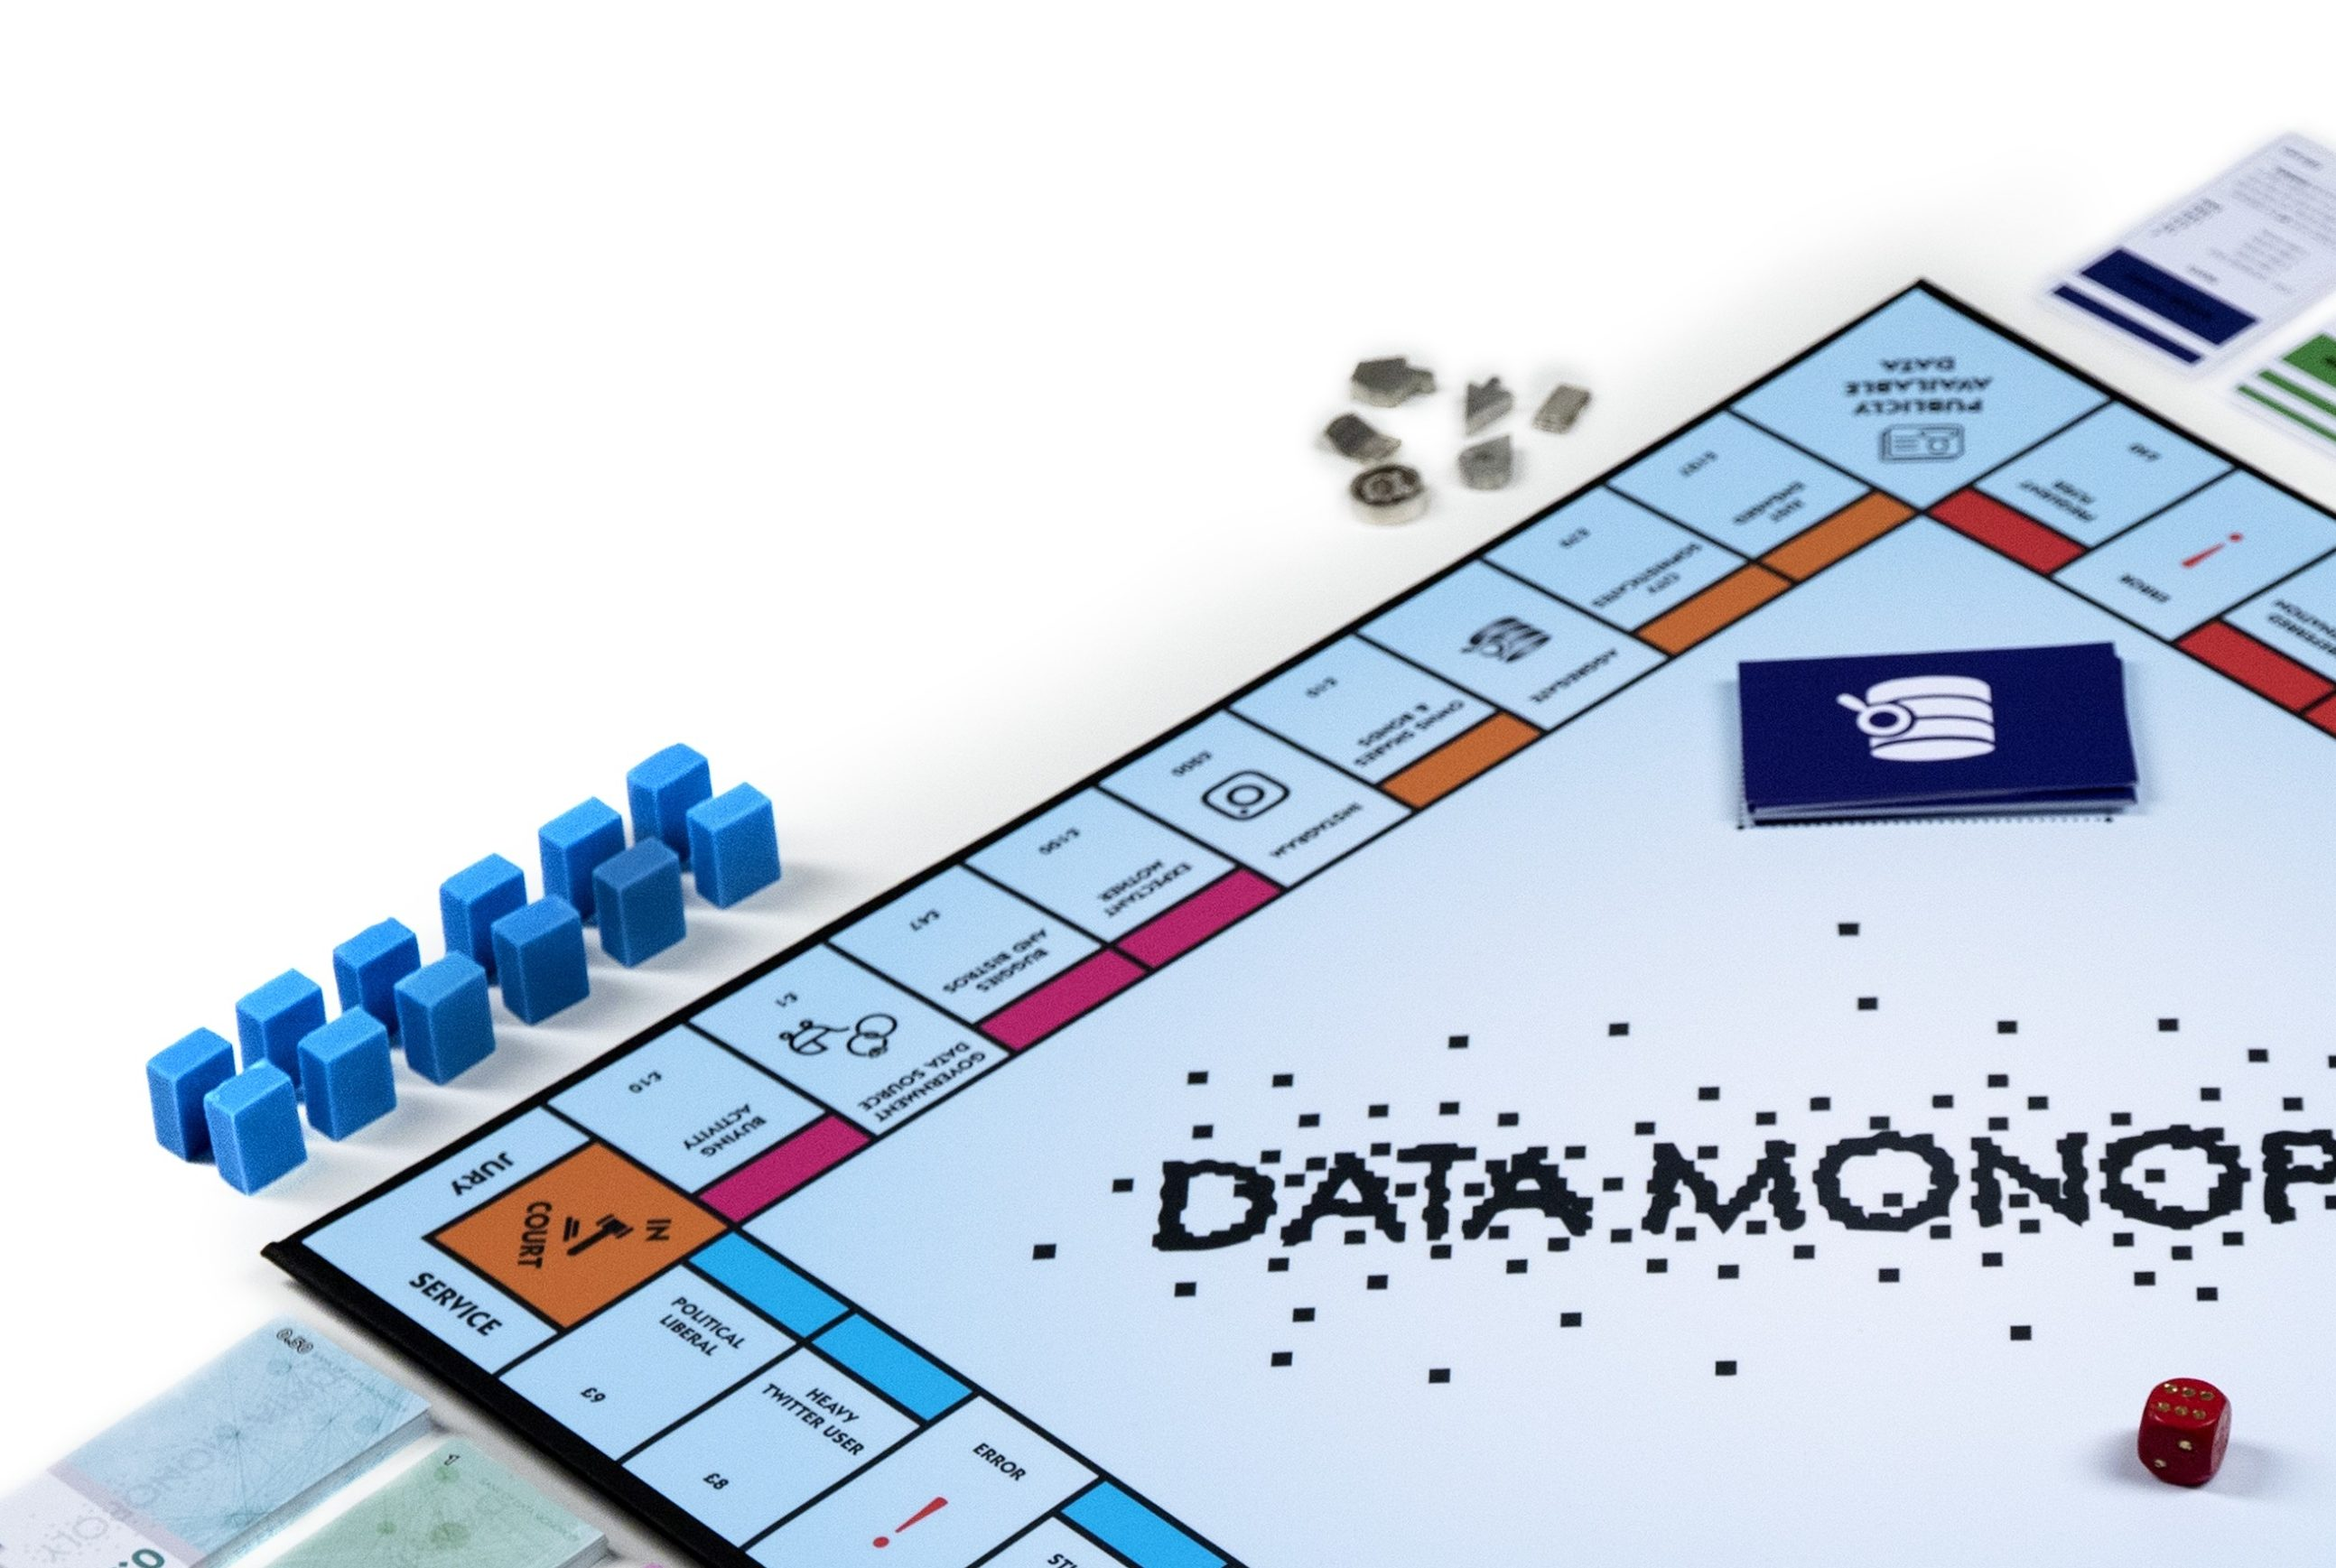 monopoly boardgame with cards and fields presenting data capitalism categories - by Anya Mooney